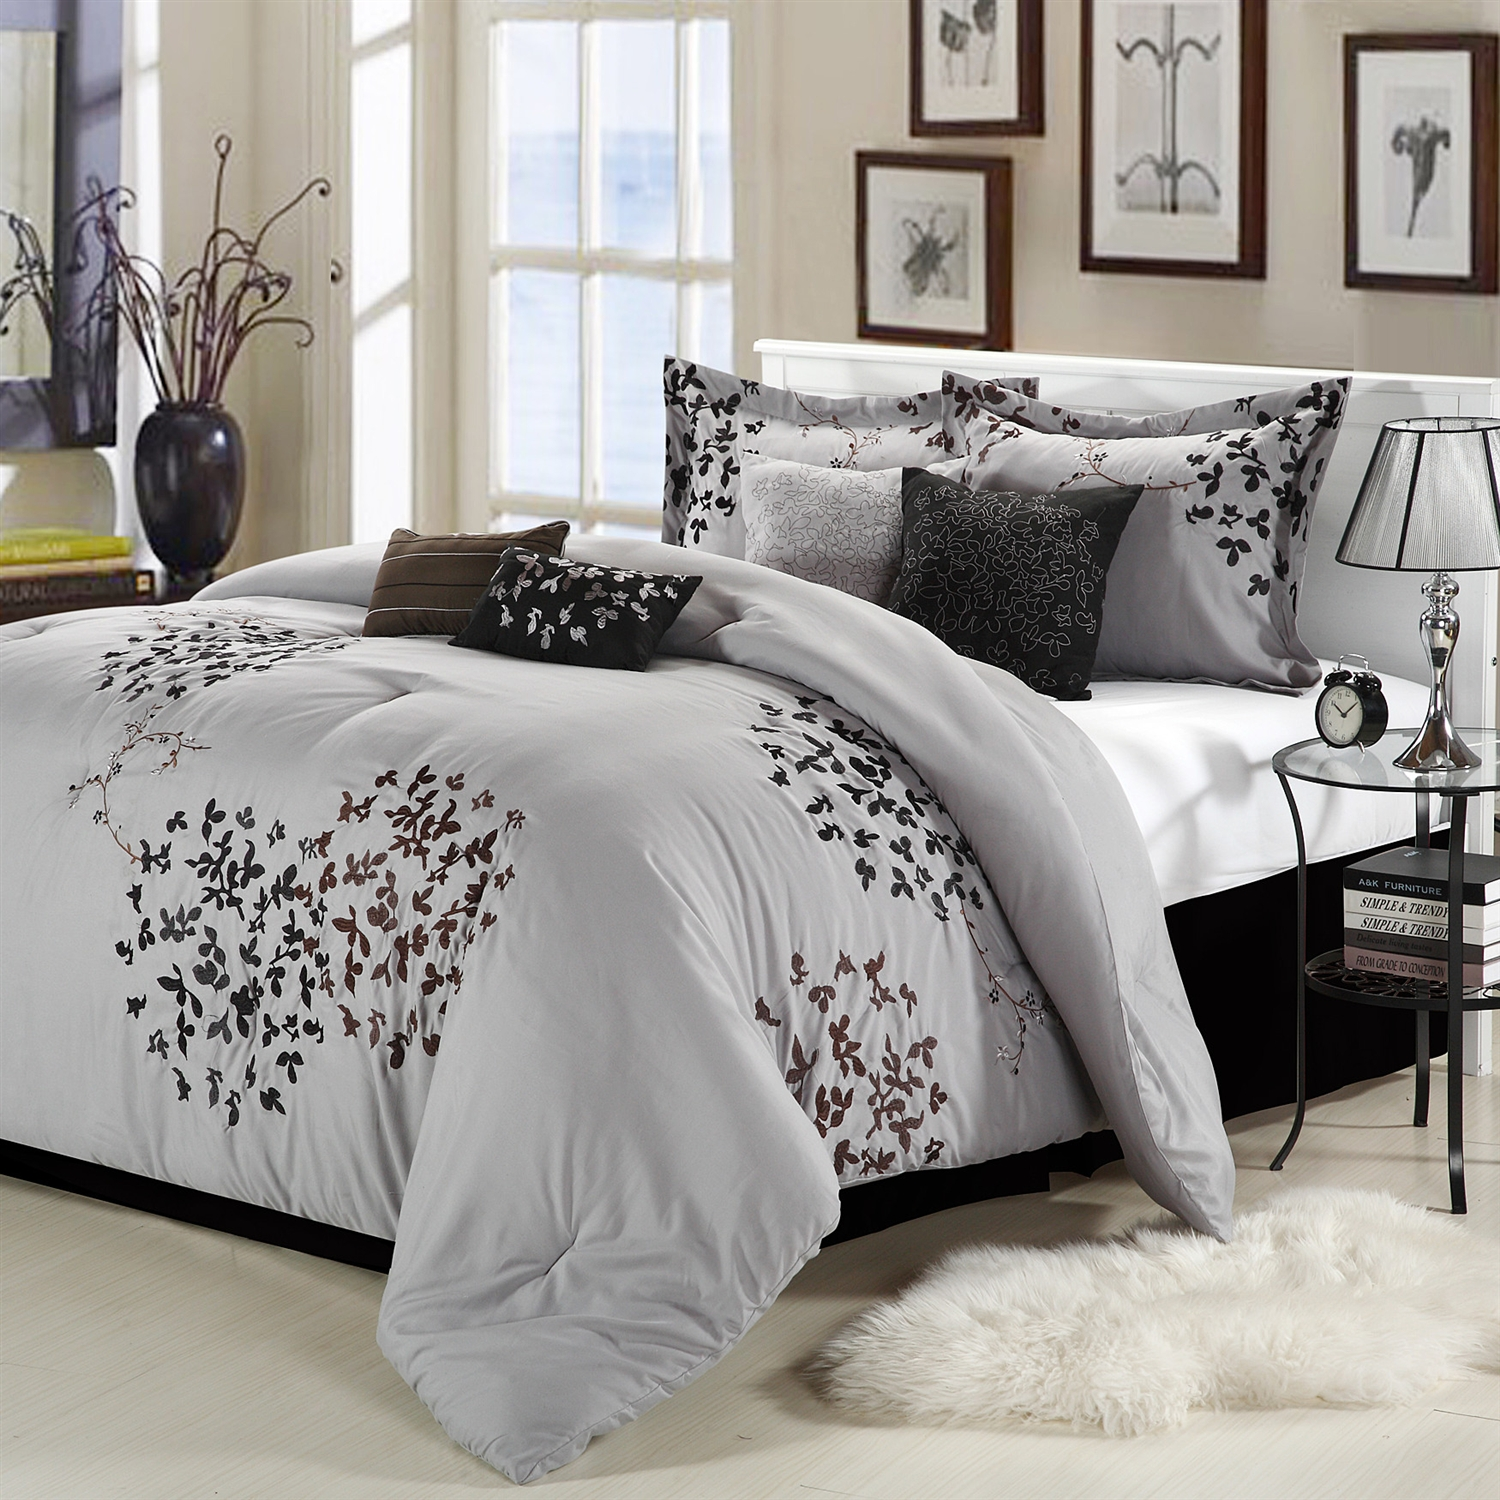 Queen Size 8 Piece Comforter Set In Silver Gray Black Brown Floral Fastfurnishings Com